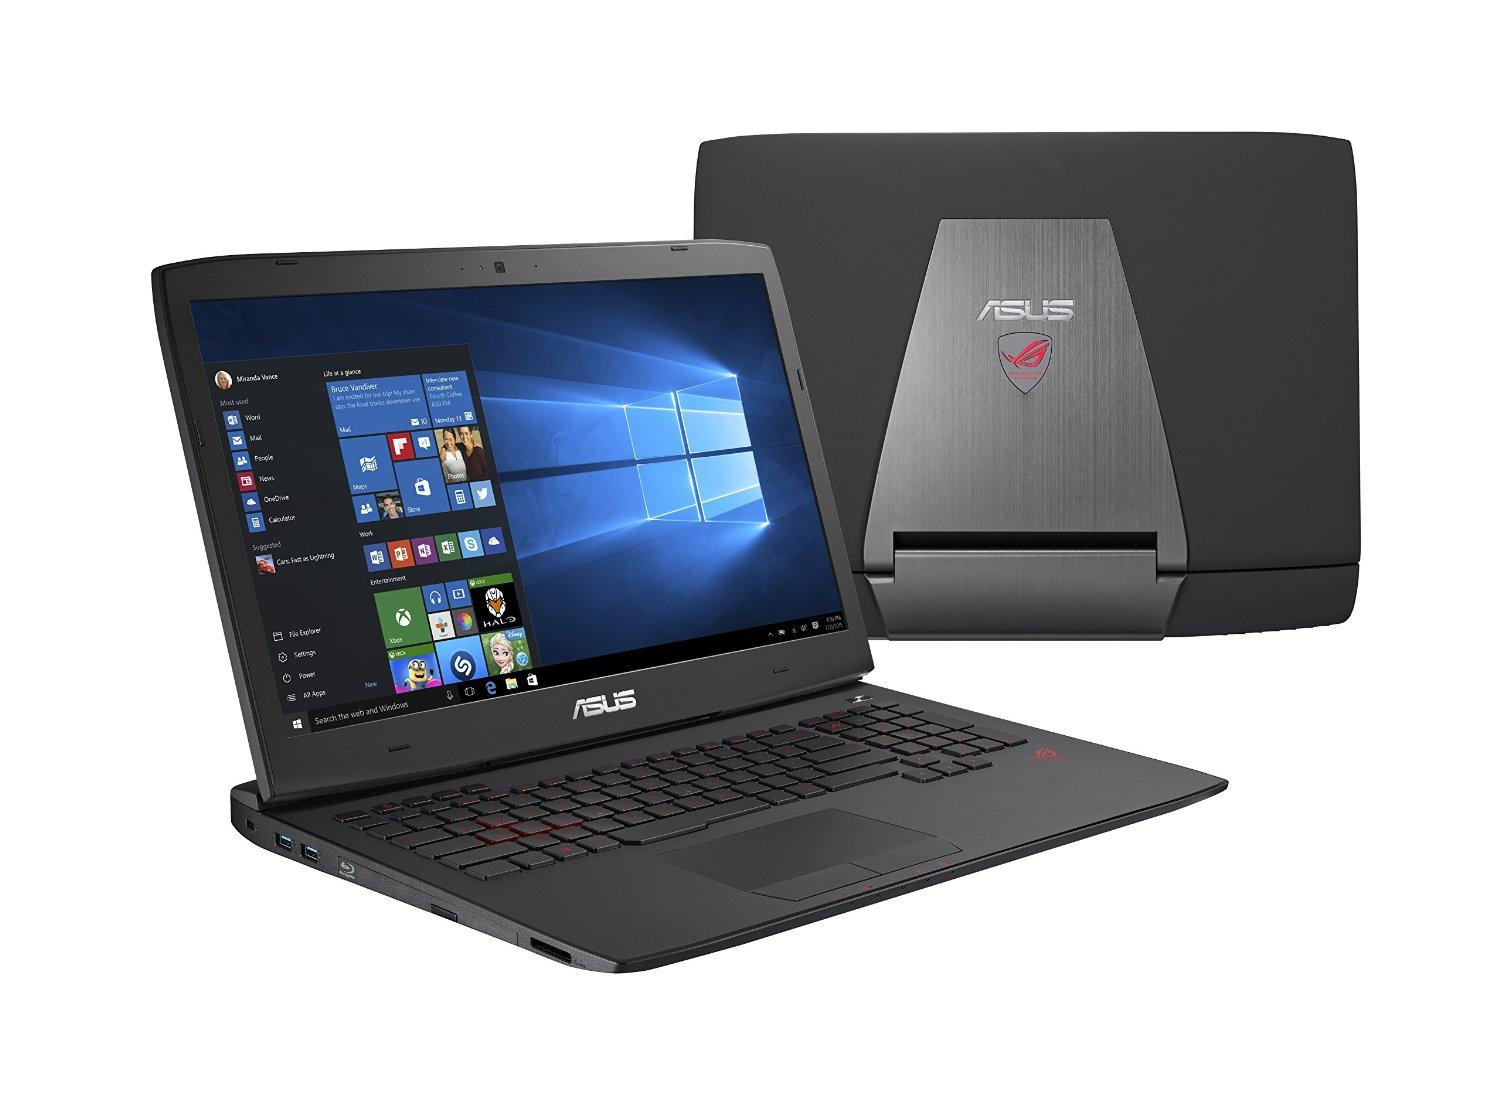 ASUS ROG G751JT-WH71(WX) 17